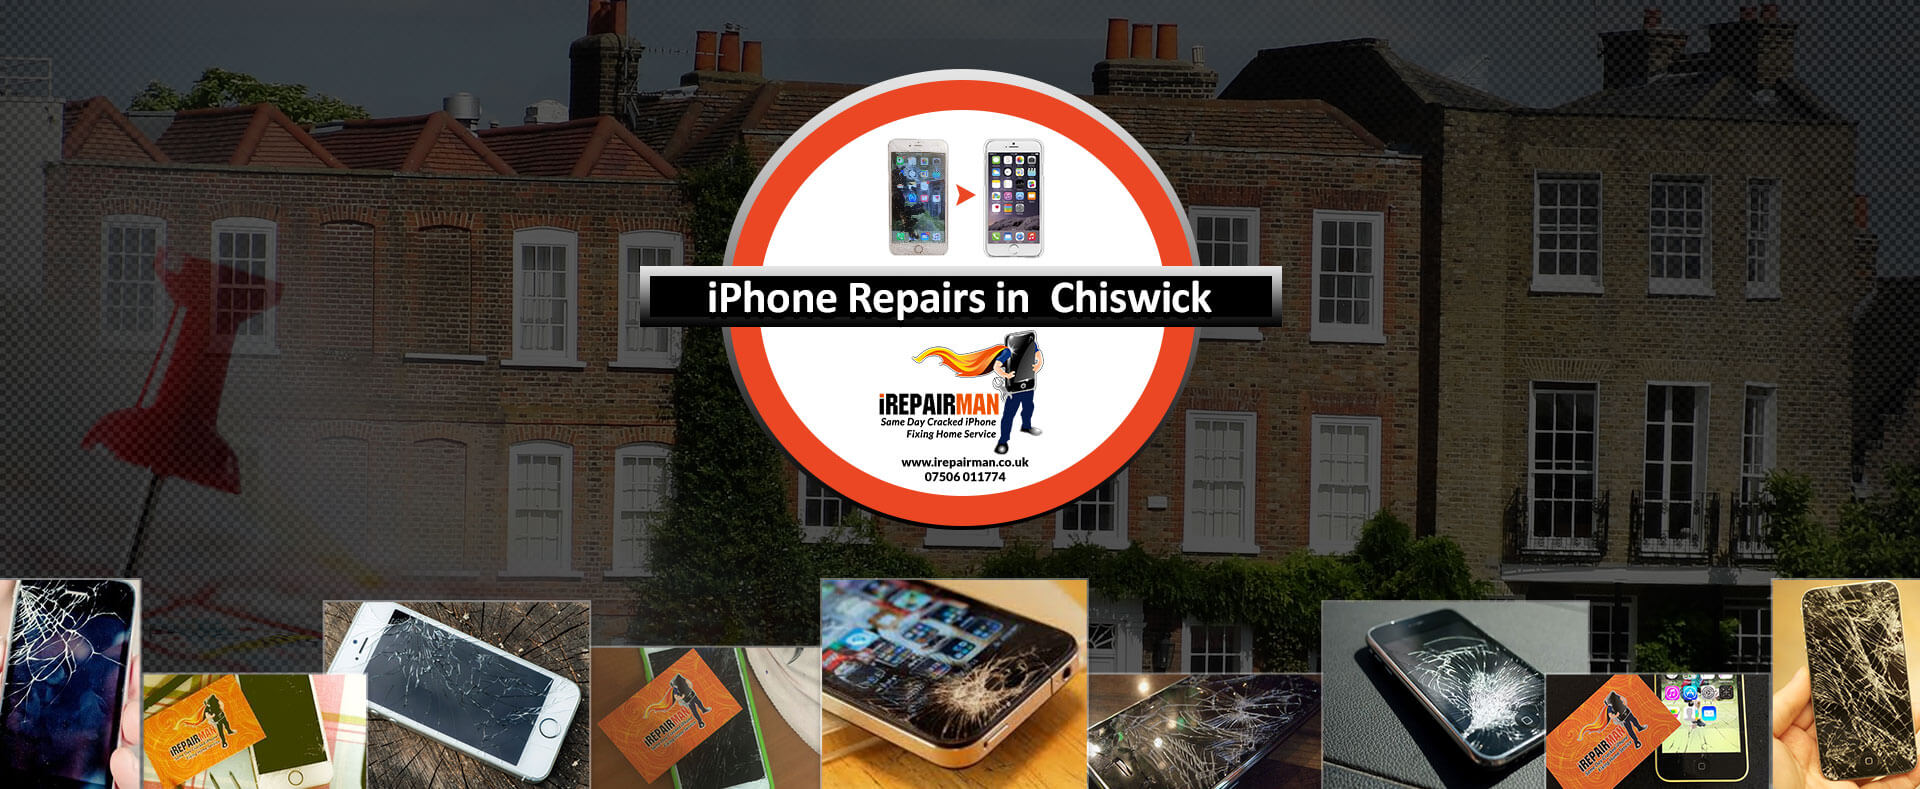 iPhone Repairs in Chiswick